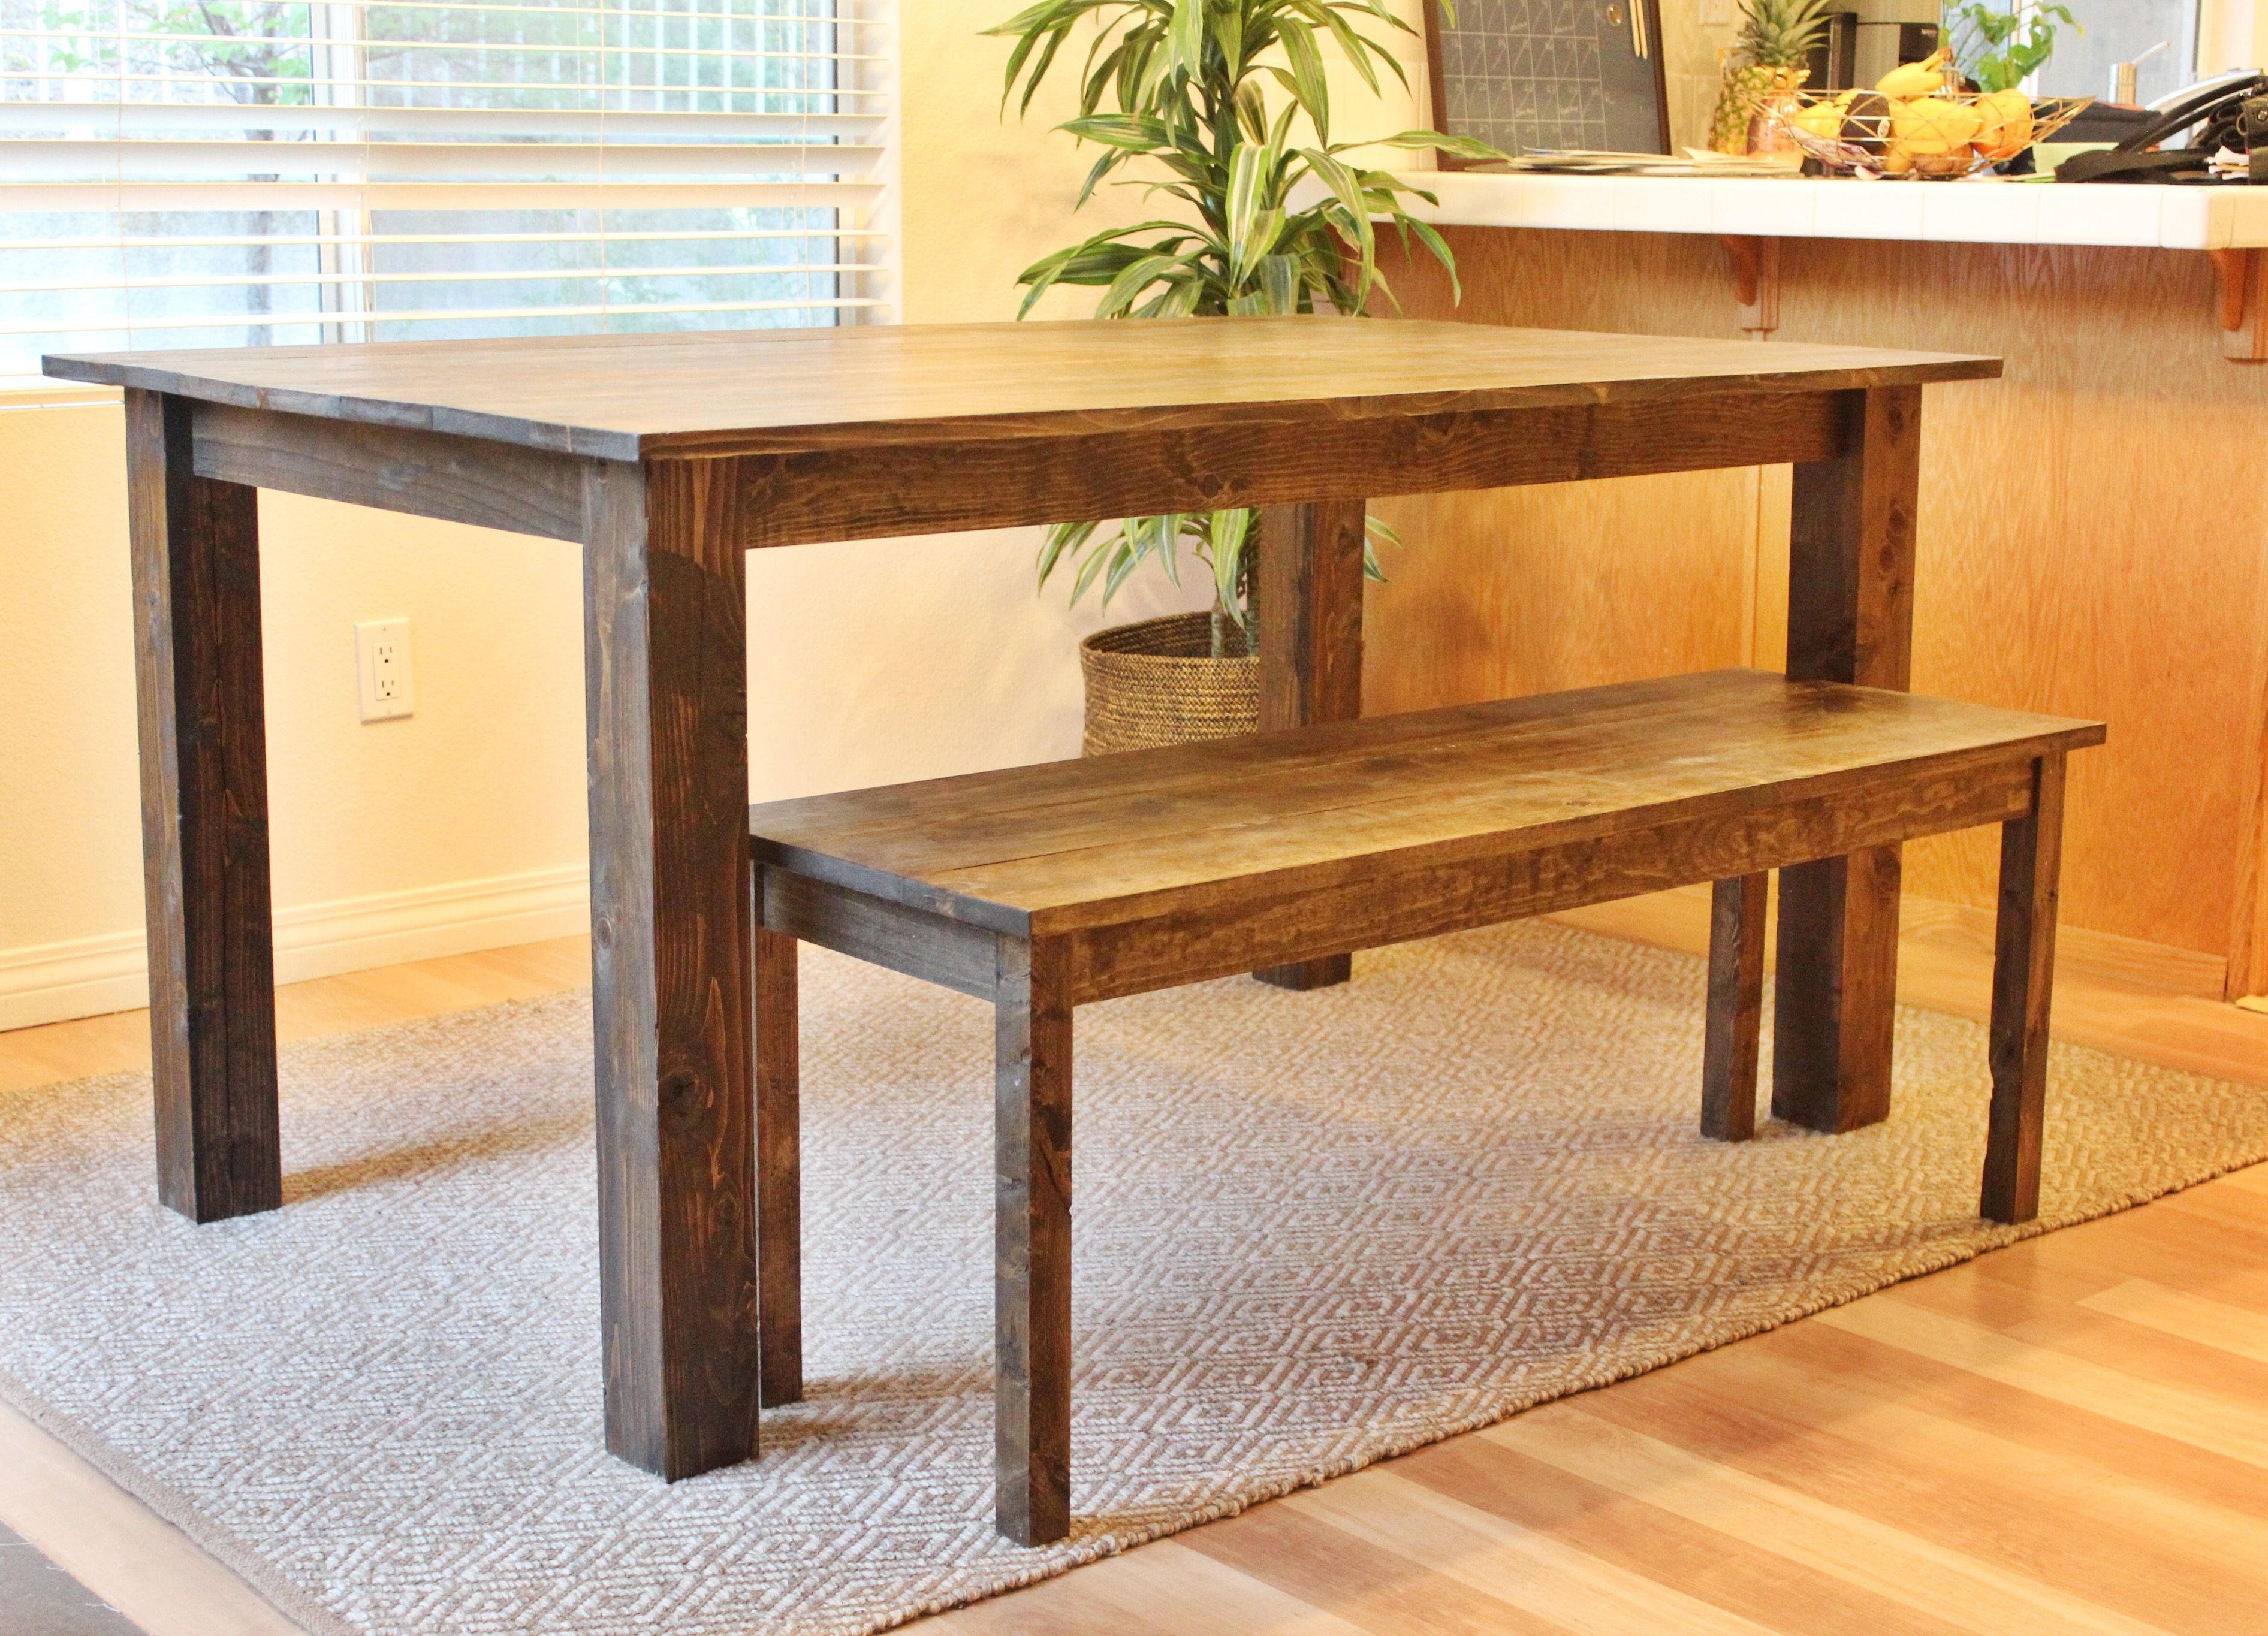 Reclaimed dining table Orange County,ca | Pine dining table, Reclaimed dining table, Custom ...